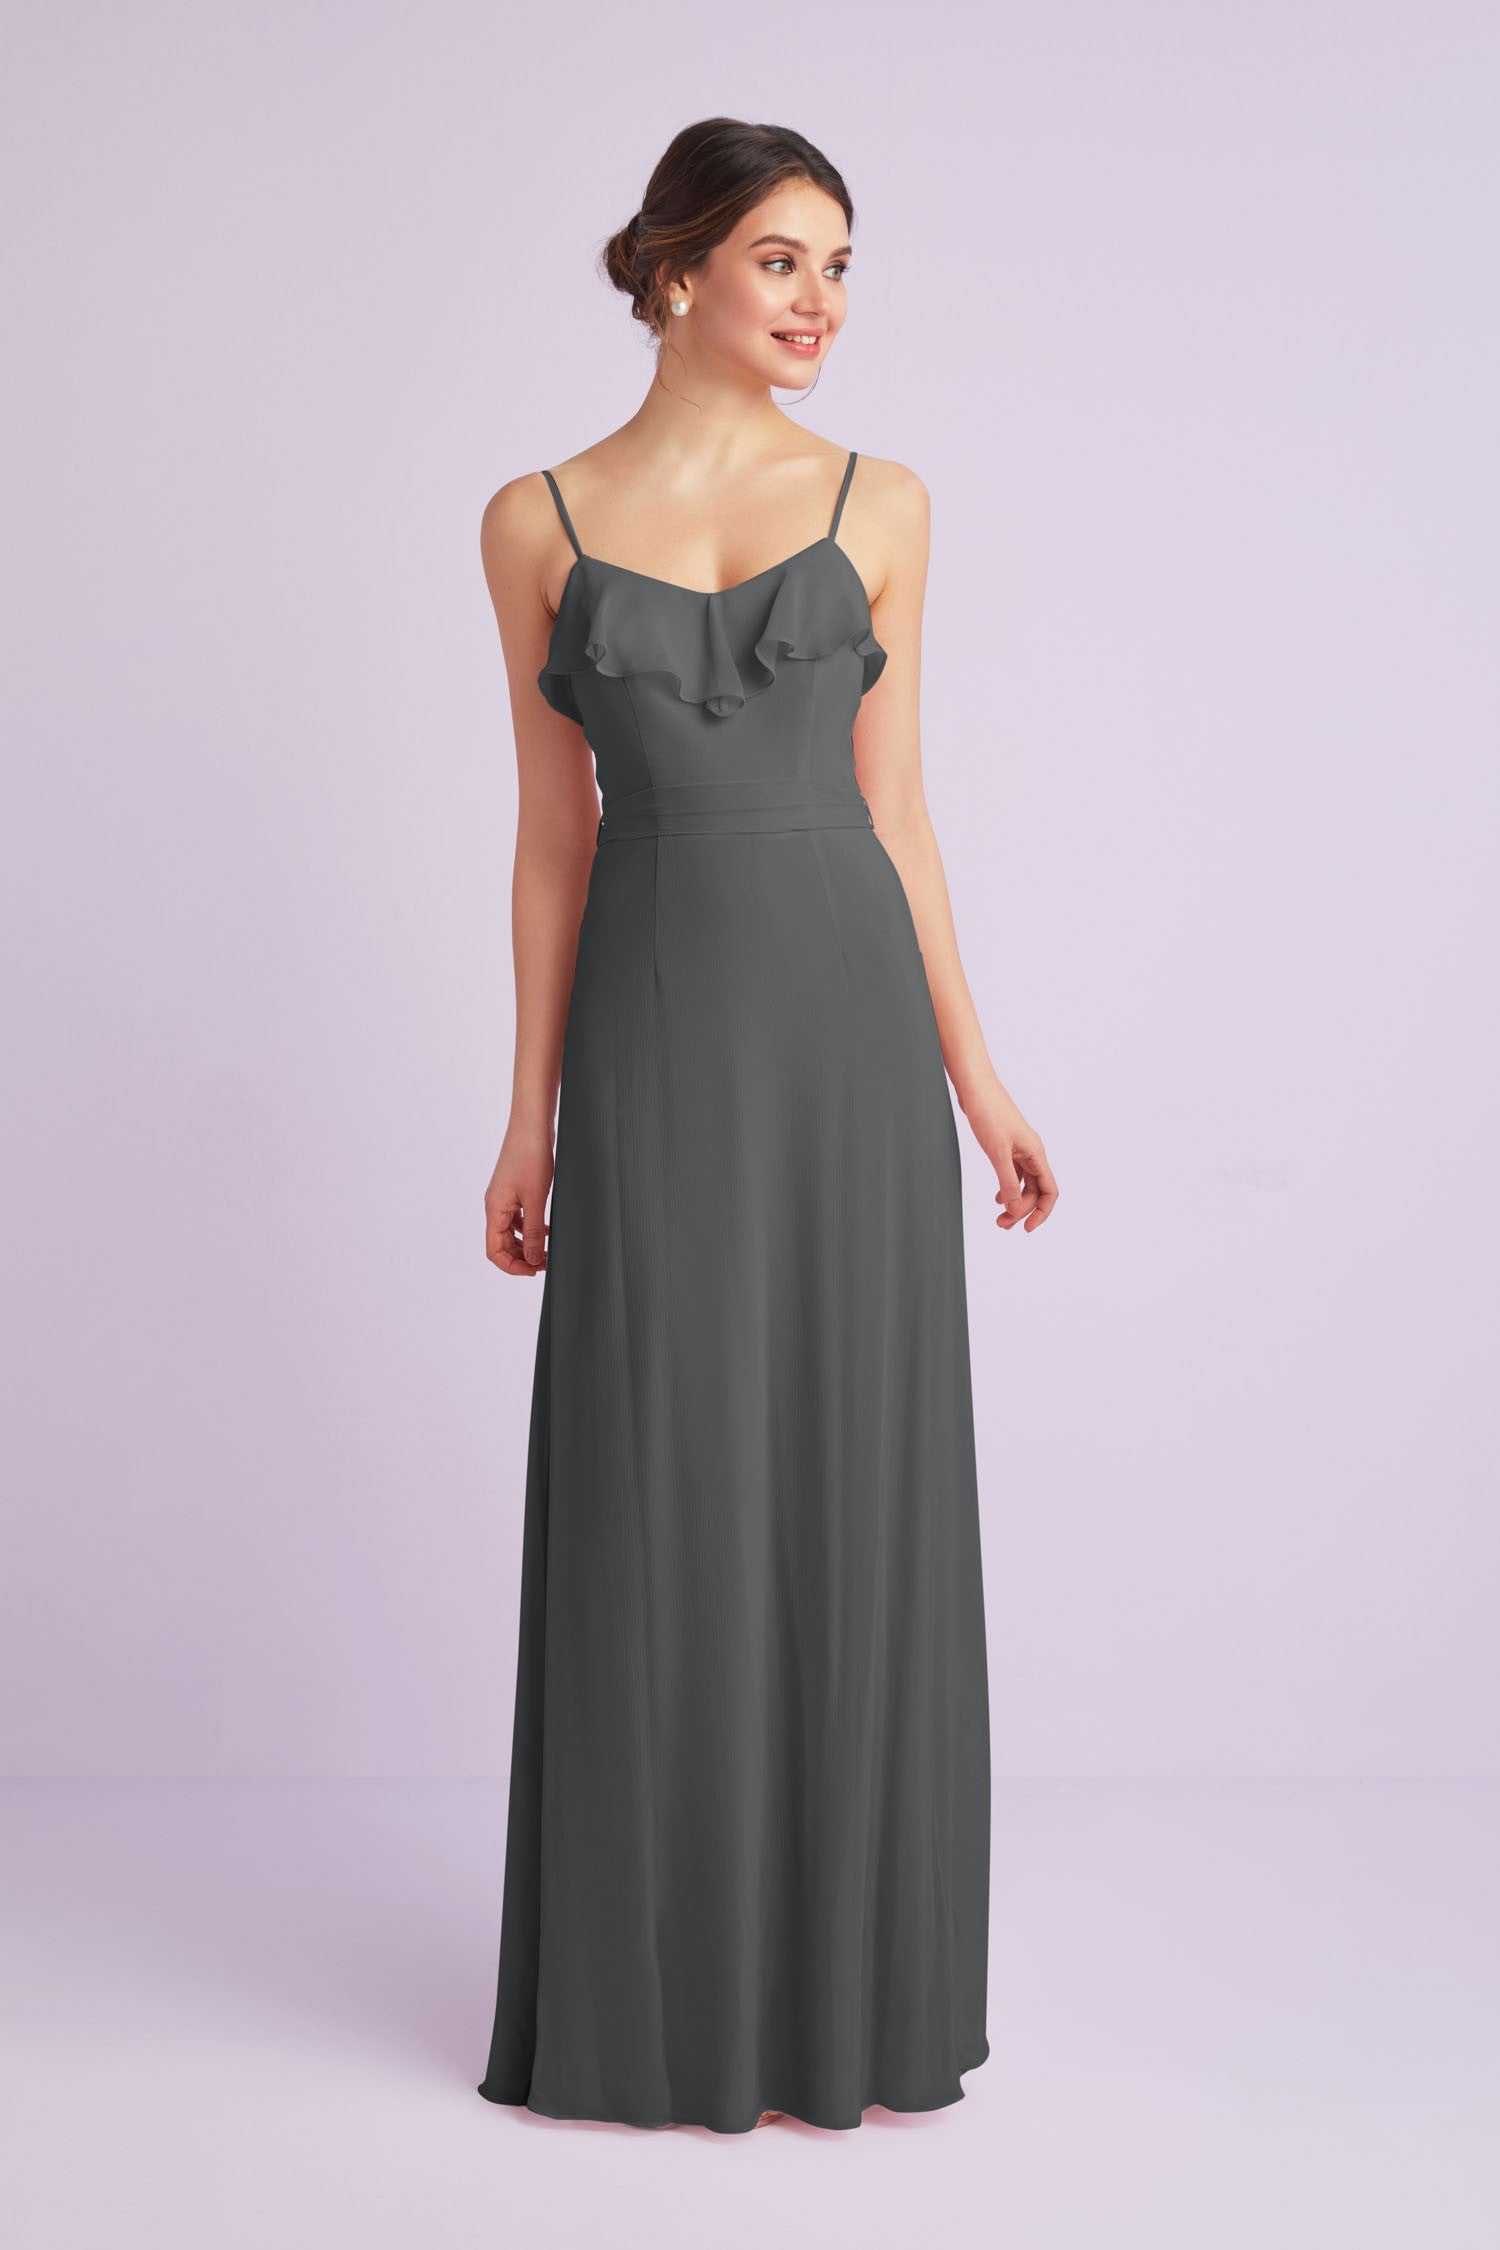 Ruffled Crinkle Chiffon Bridesmaid Dress